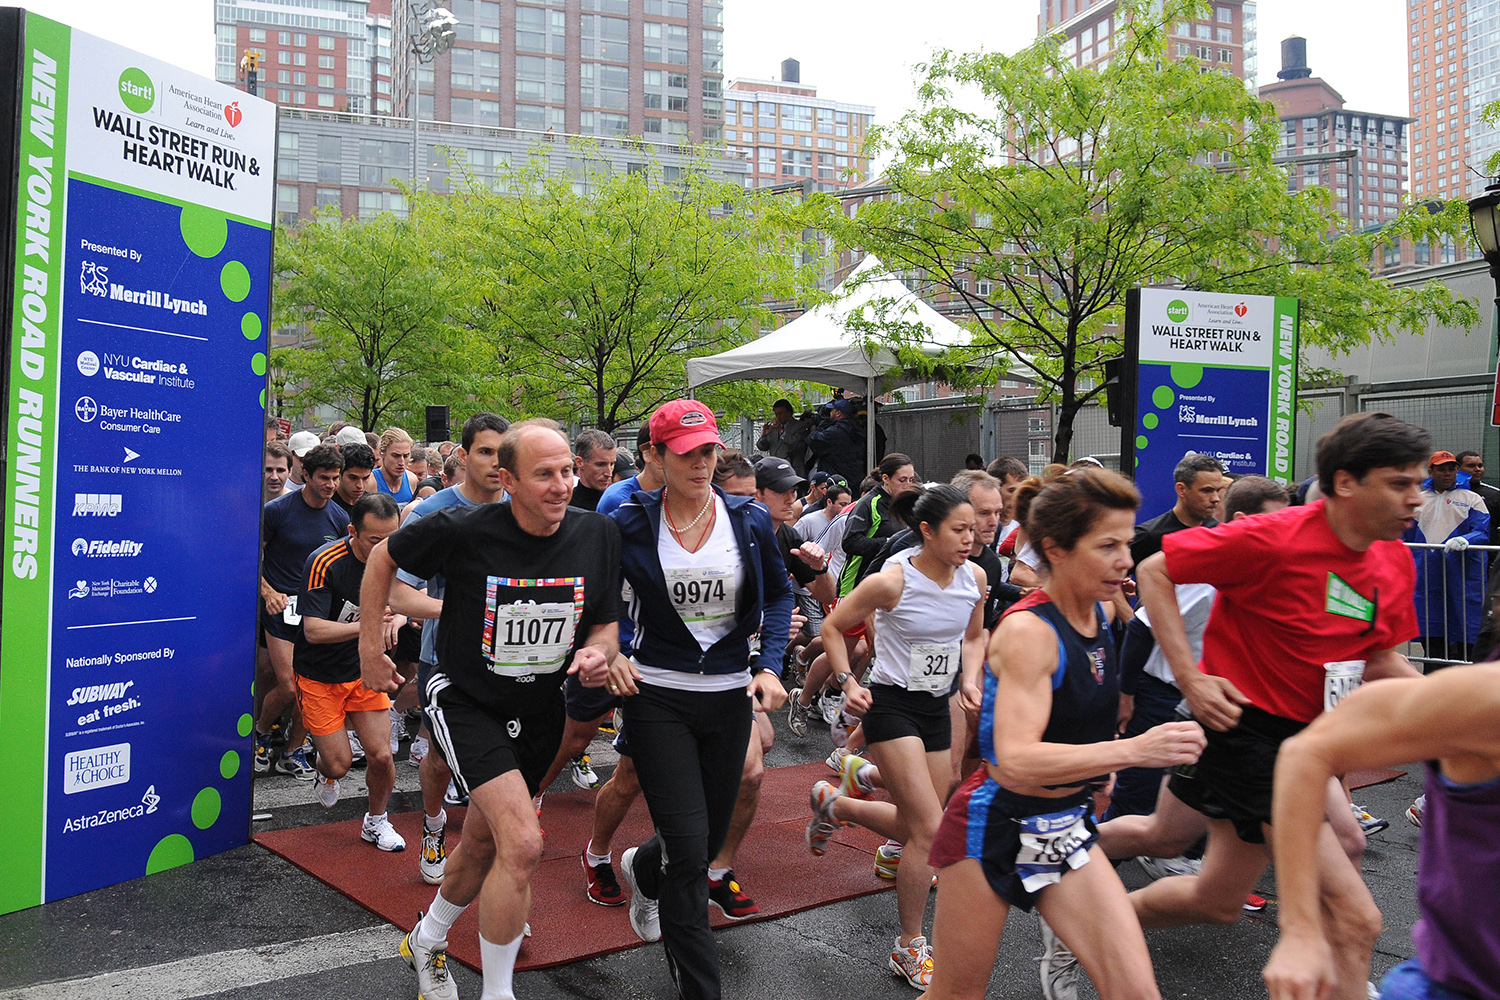 Ben Asen Event Photo: American Heart Association Wall Street Run and Walk start of the race